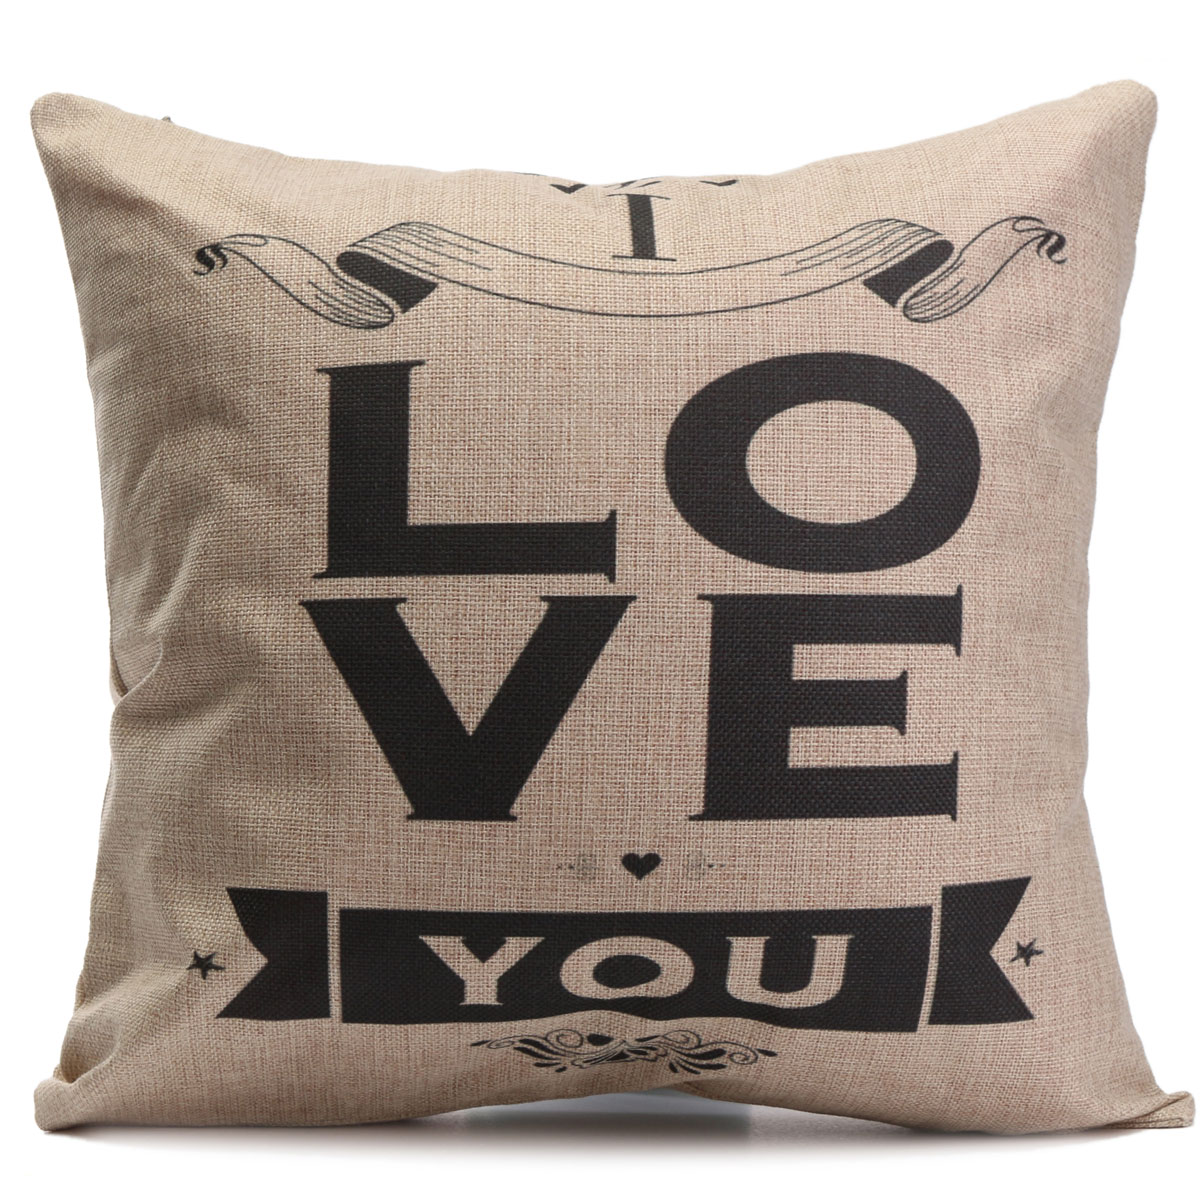 Lovers Lock Pillow Case Cotton linen Cushion Cover Decorative Square Home Throw